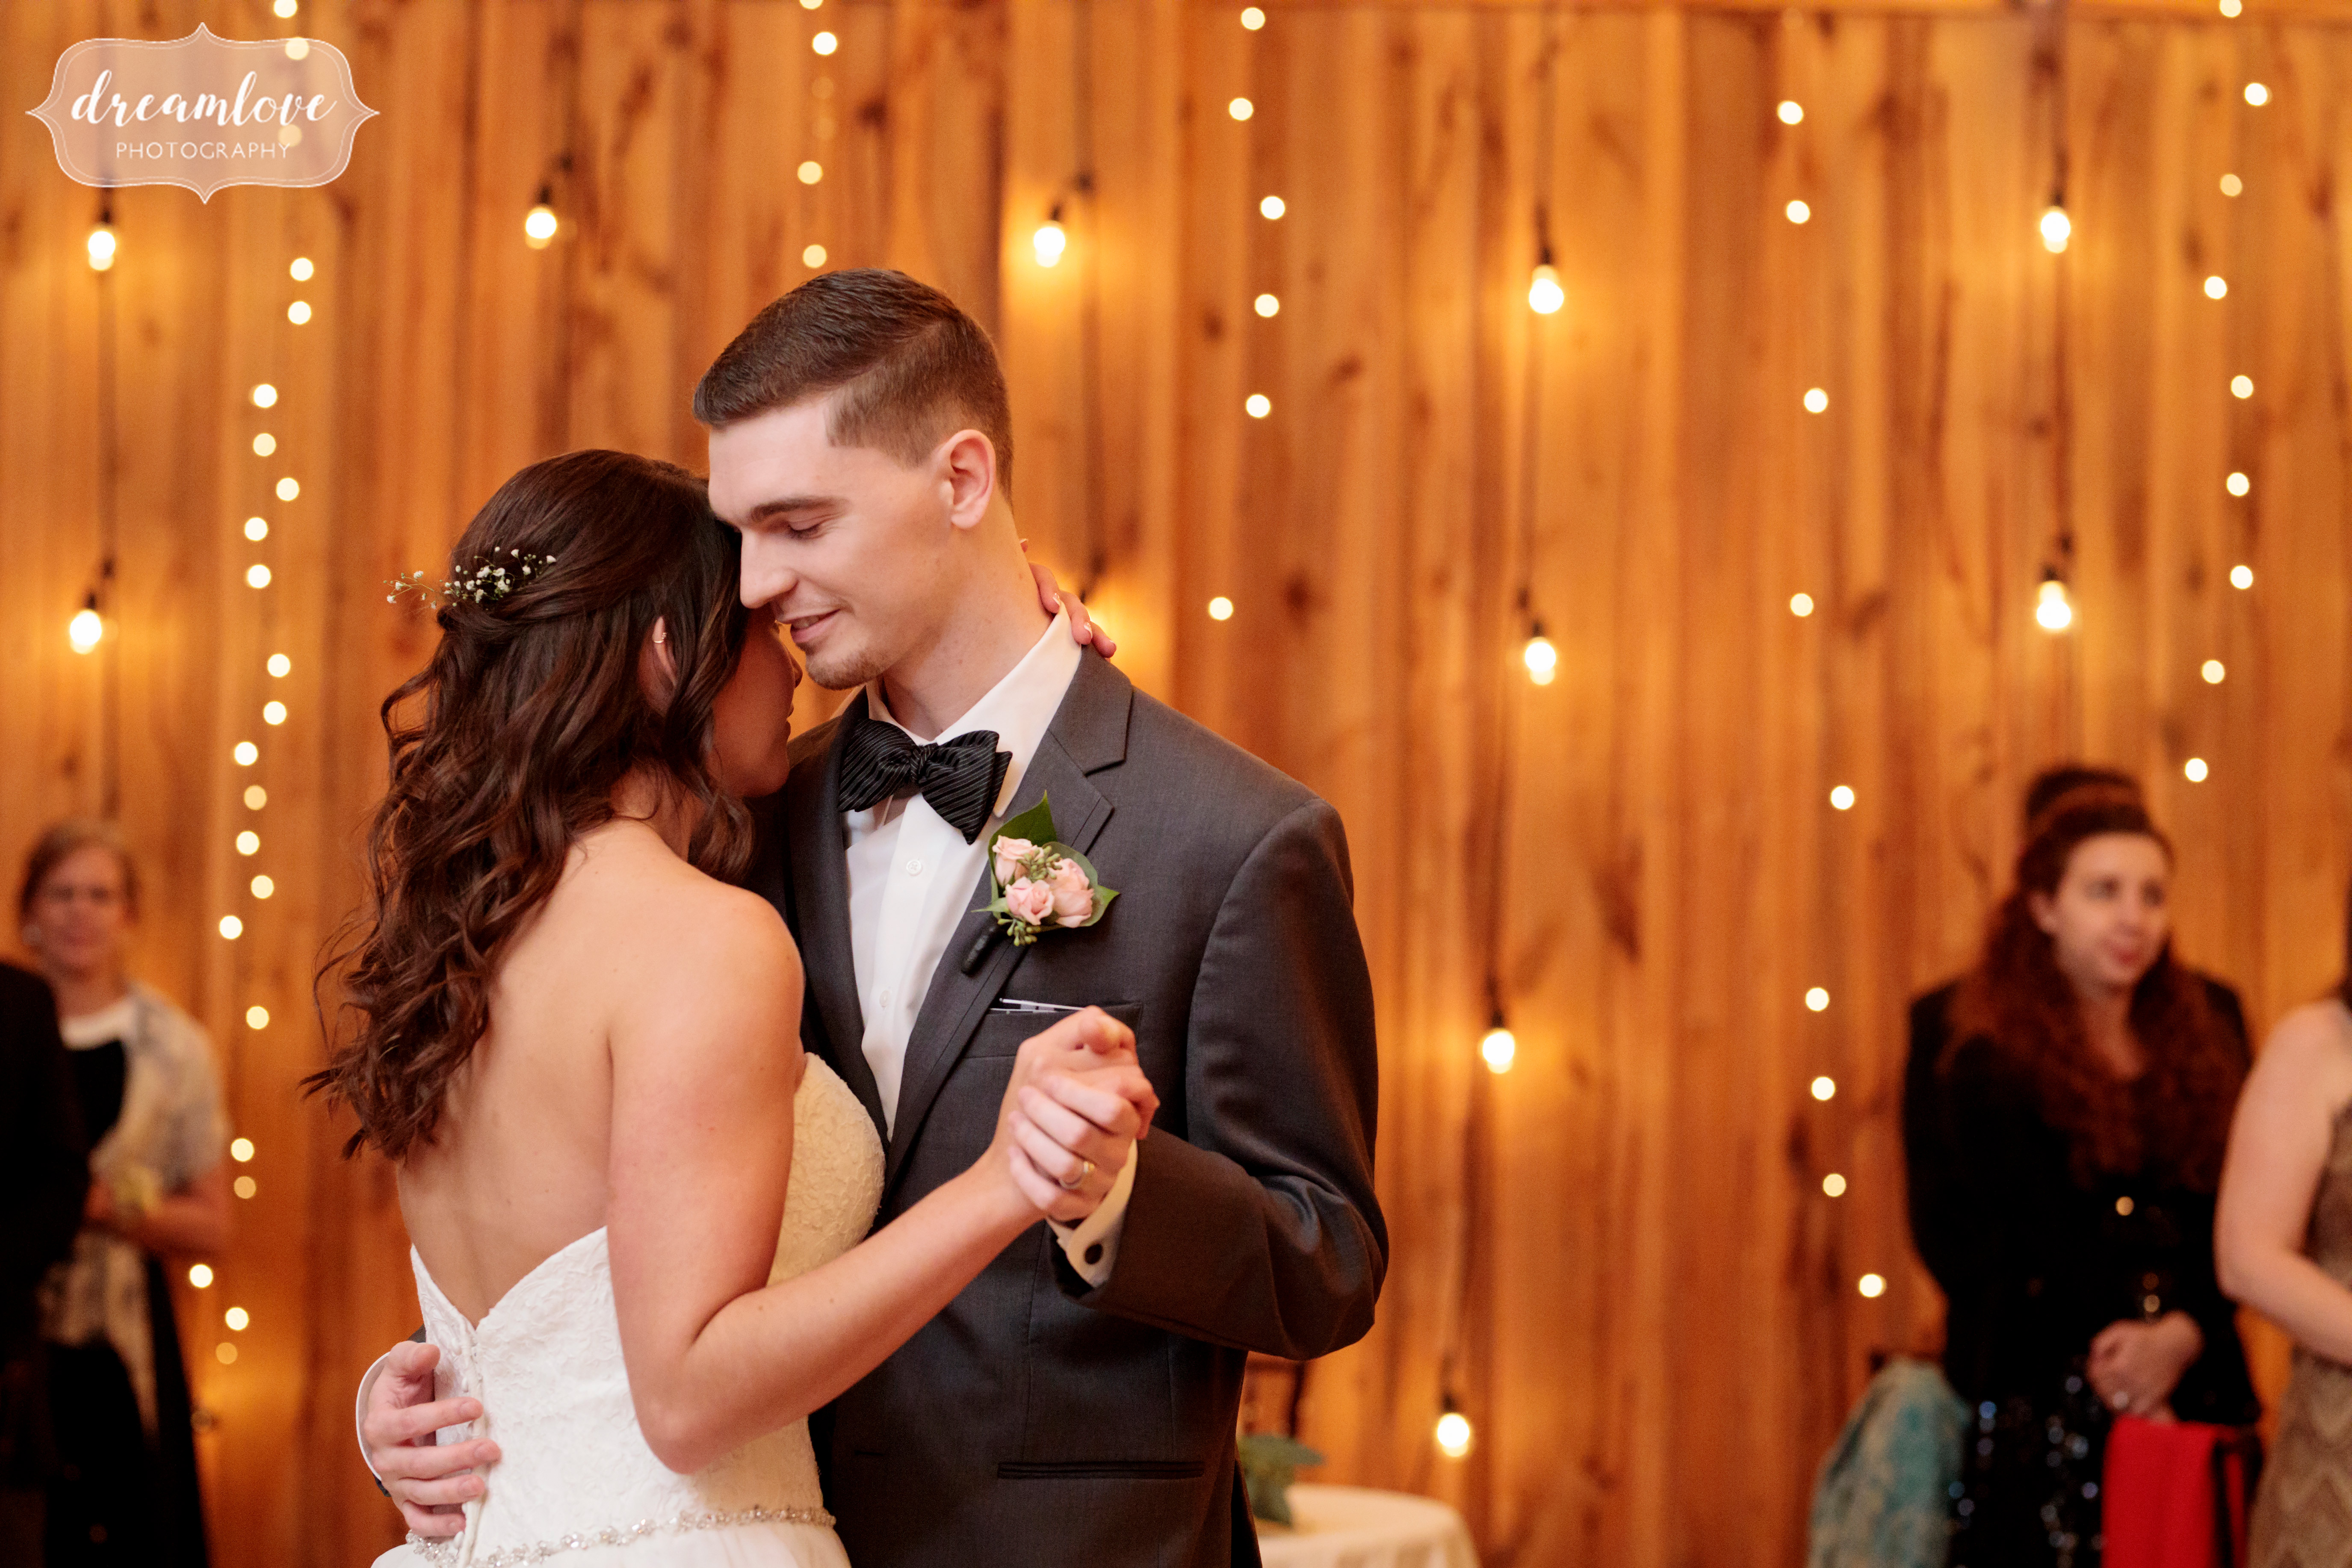 The bride and groom have a romantic first dance in CT.